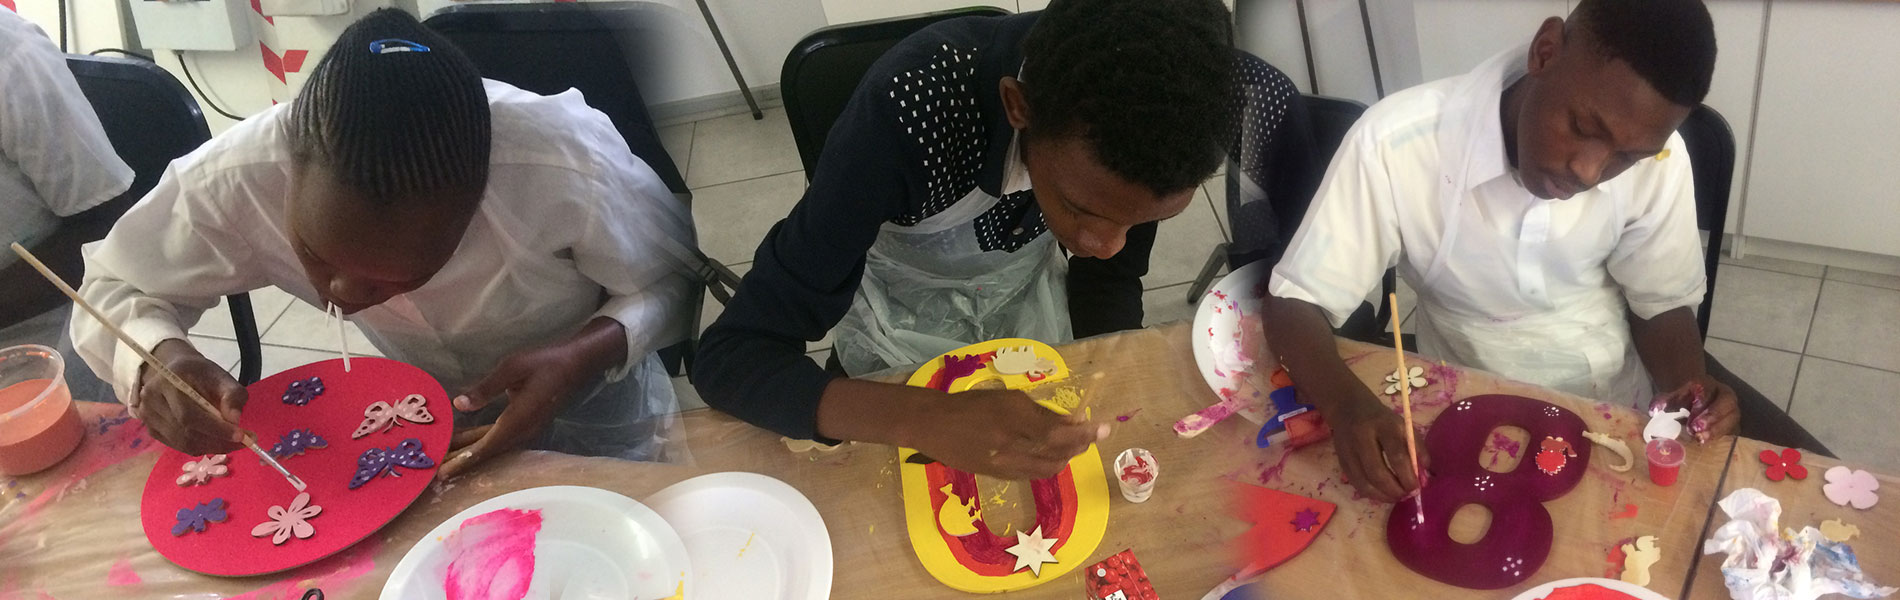 Activities includes Creative Expression